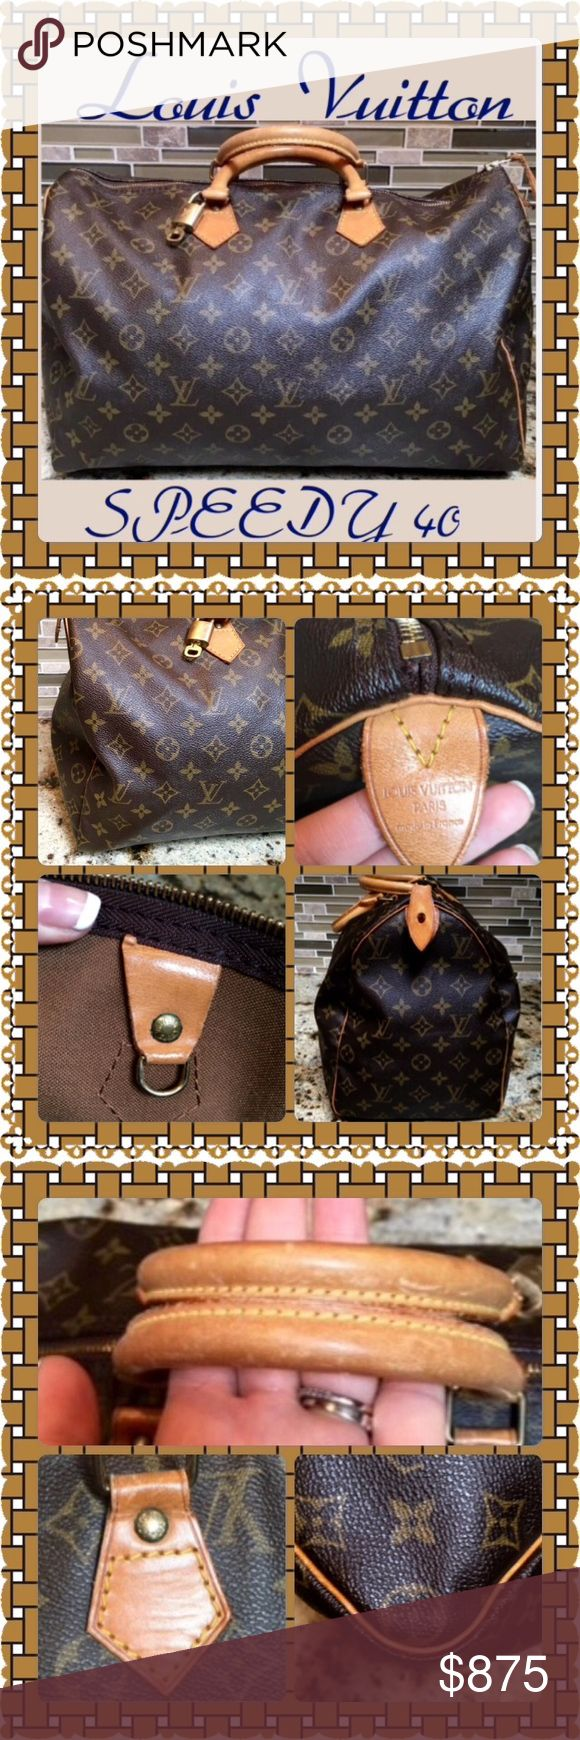 GORGEOUS AUTHENTIC LOUIS VUITTON SPEEDY 40 STUNNING AUTHENTIC LOUIS VUITTON SPEEDY 40 GREAT CONDITION!!! SEE PICTURES IN BOTH LISTINGS PLEASE COMES WITH LOCK, KEY, AND BASE SHARPER. Louis Vuitton Bags Satchels